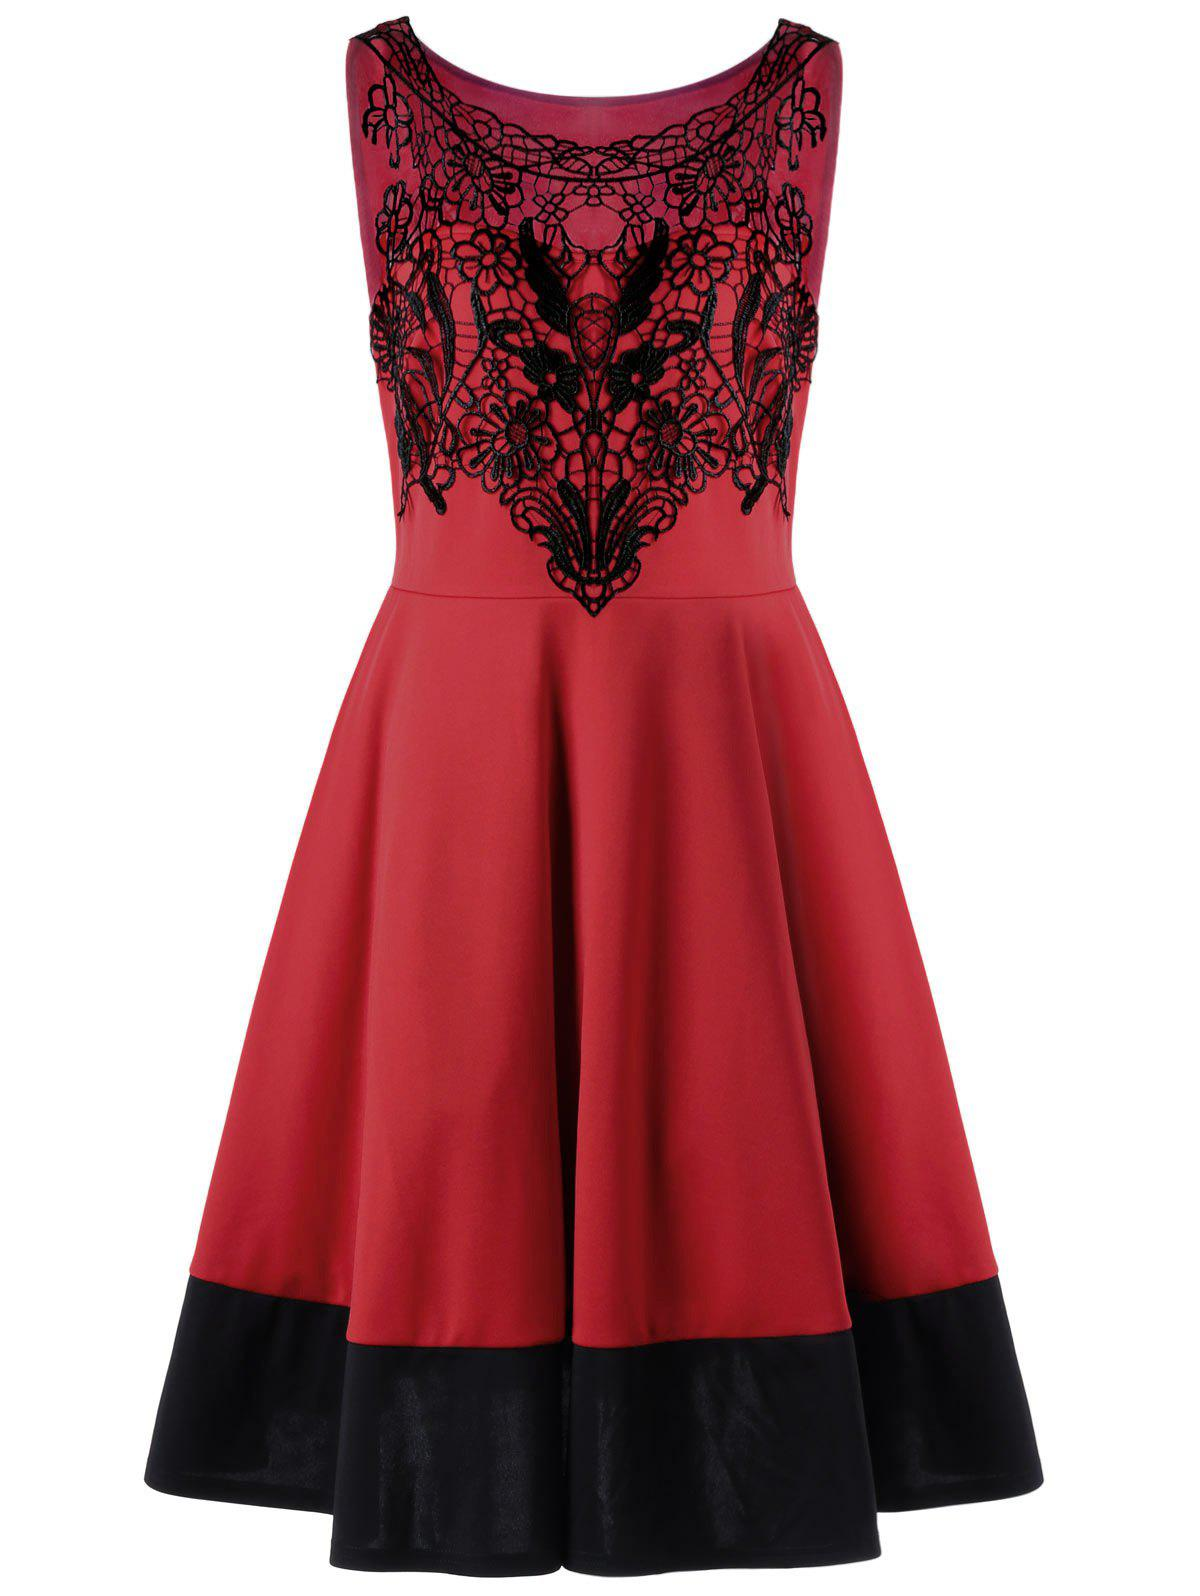 Crochet Panel Plus Size Flare Cocktail DressWOMEN<br><br>Size: 2XL; Color: RED; Style: Cute; Material: Polyester; Silhouette: A-Line; Dresses Length: Knee-Length; Neckline: Round Collar; Sleeve Length: Sleeveless; Pattern Type: Floral; With Belt: No; Season: Spring,Summer; Weight: 0.4040kg; Package Contents: 1 x Dress;